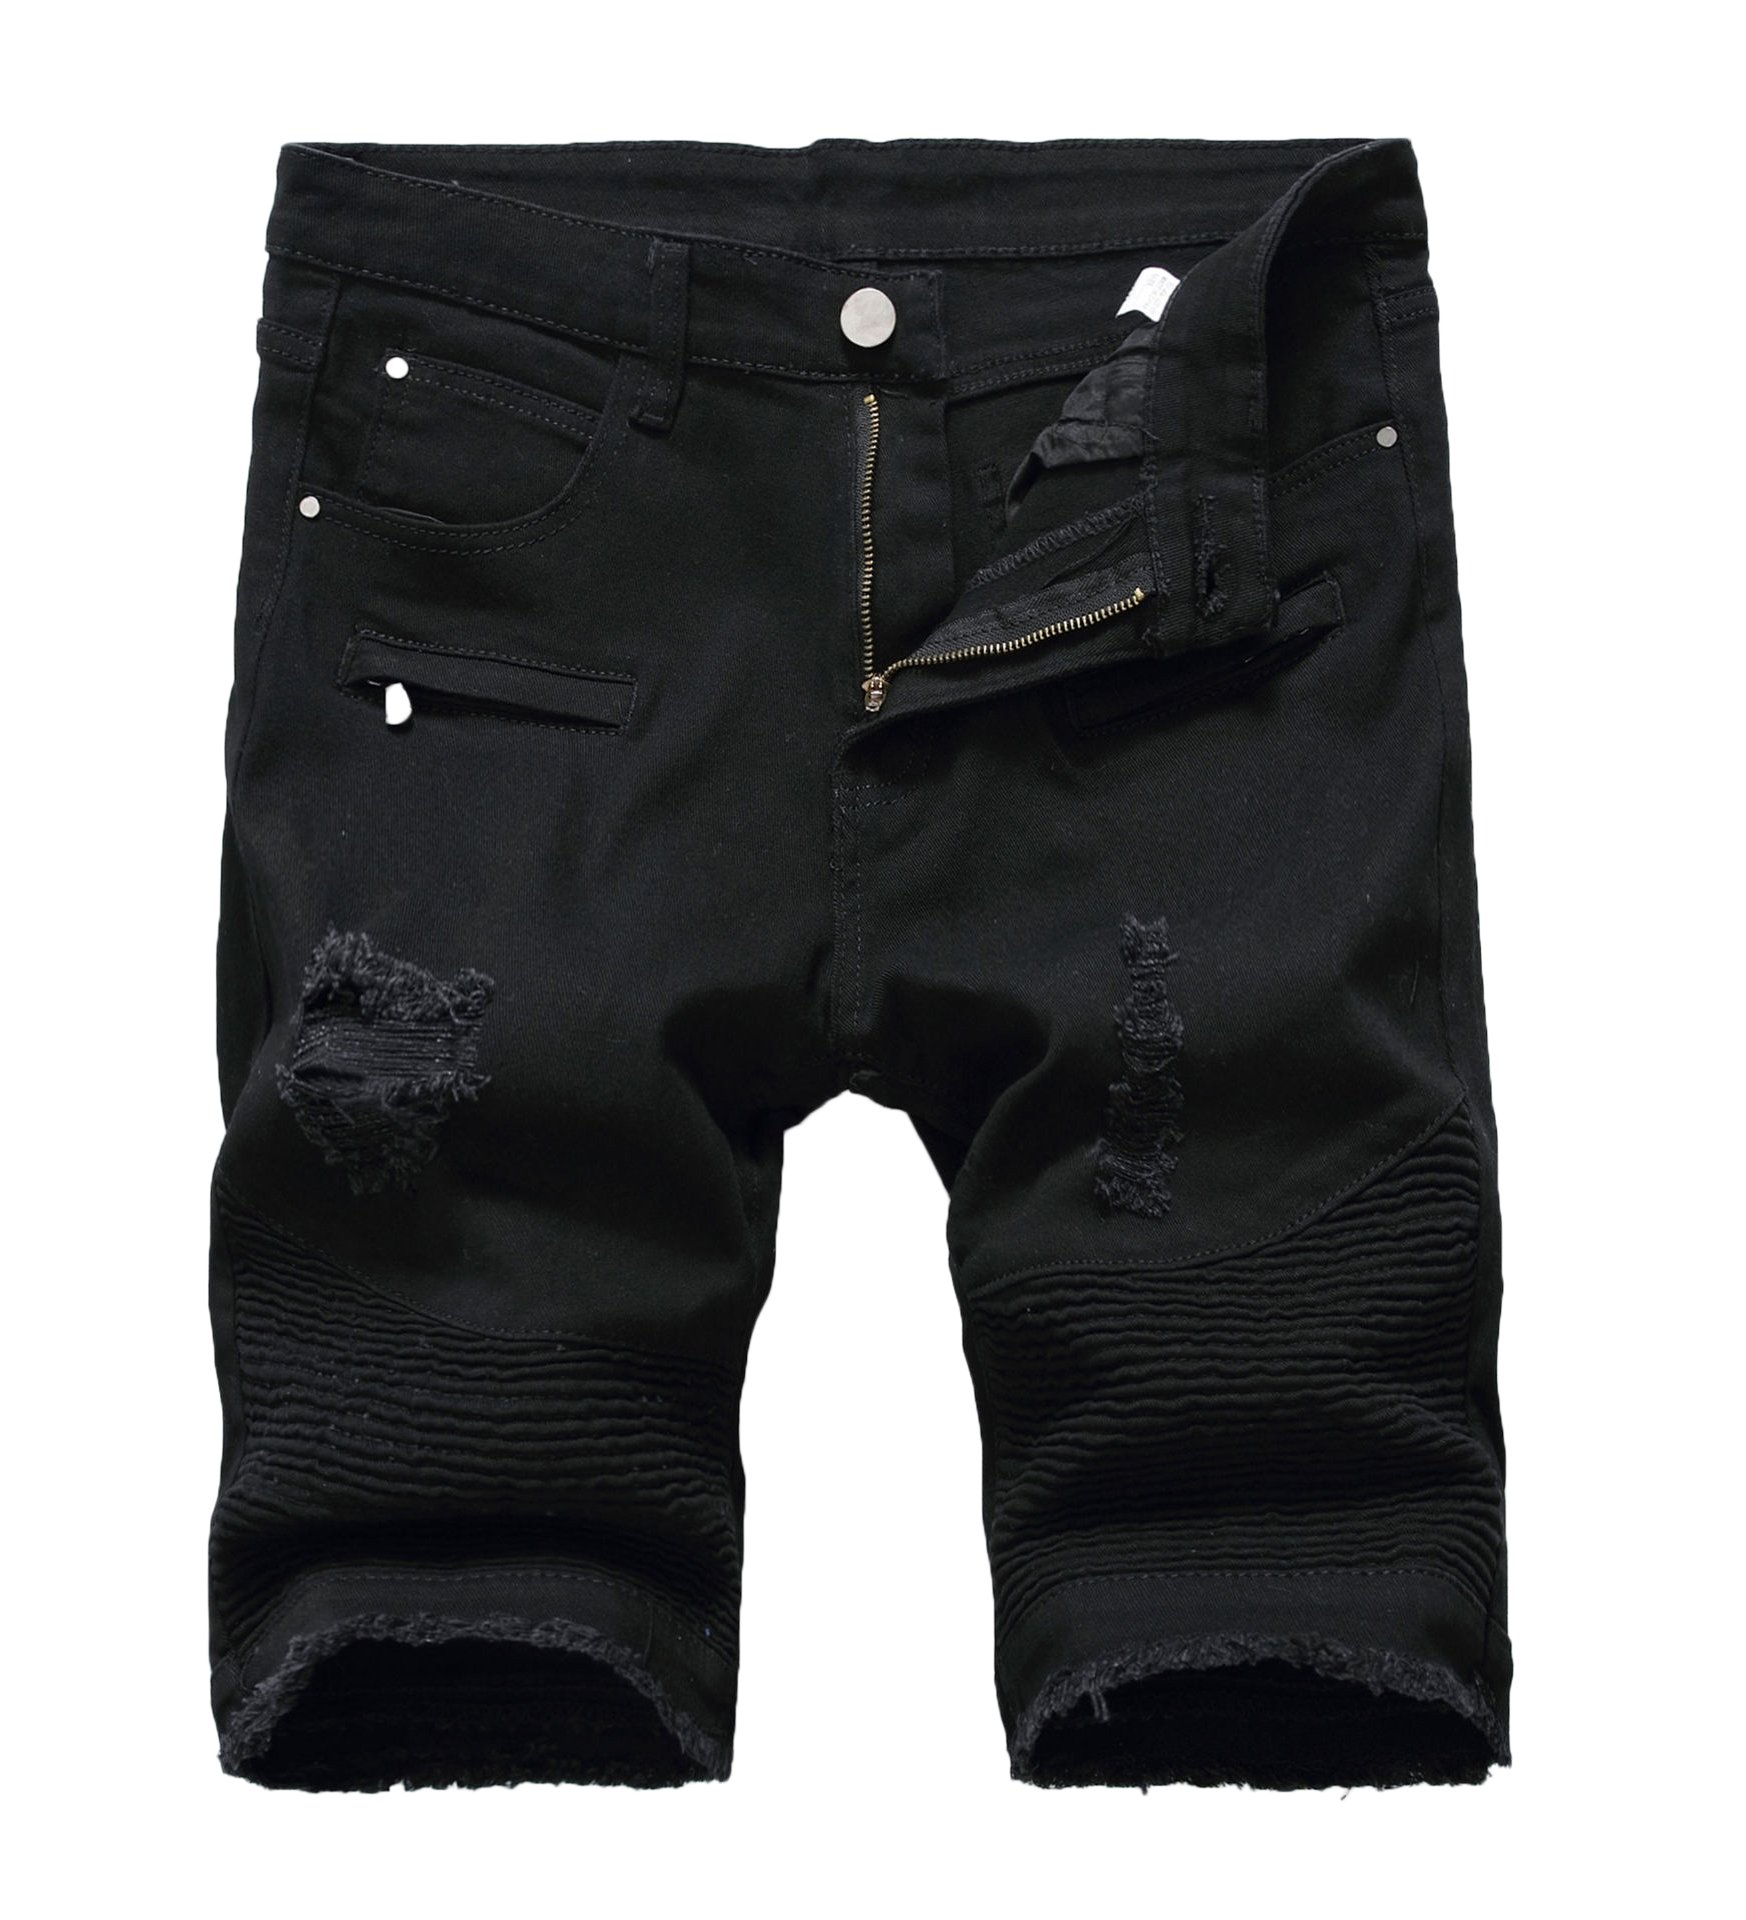 Mens Casual Zipper Biker Jeans Shorts Moto Denim Short Pants,Holes&black,38